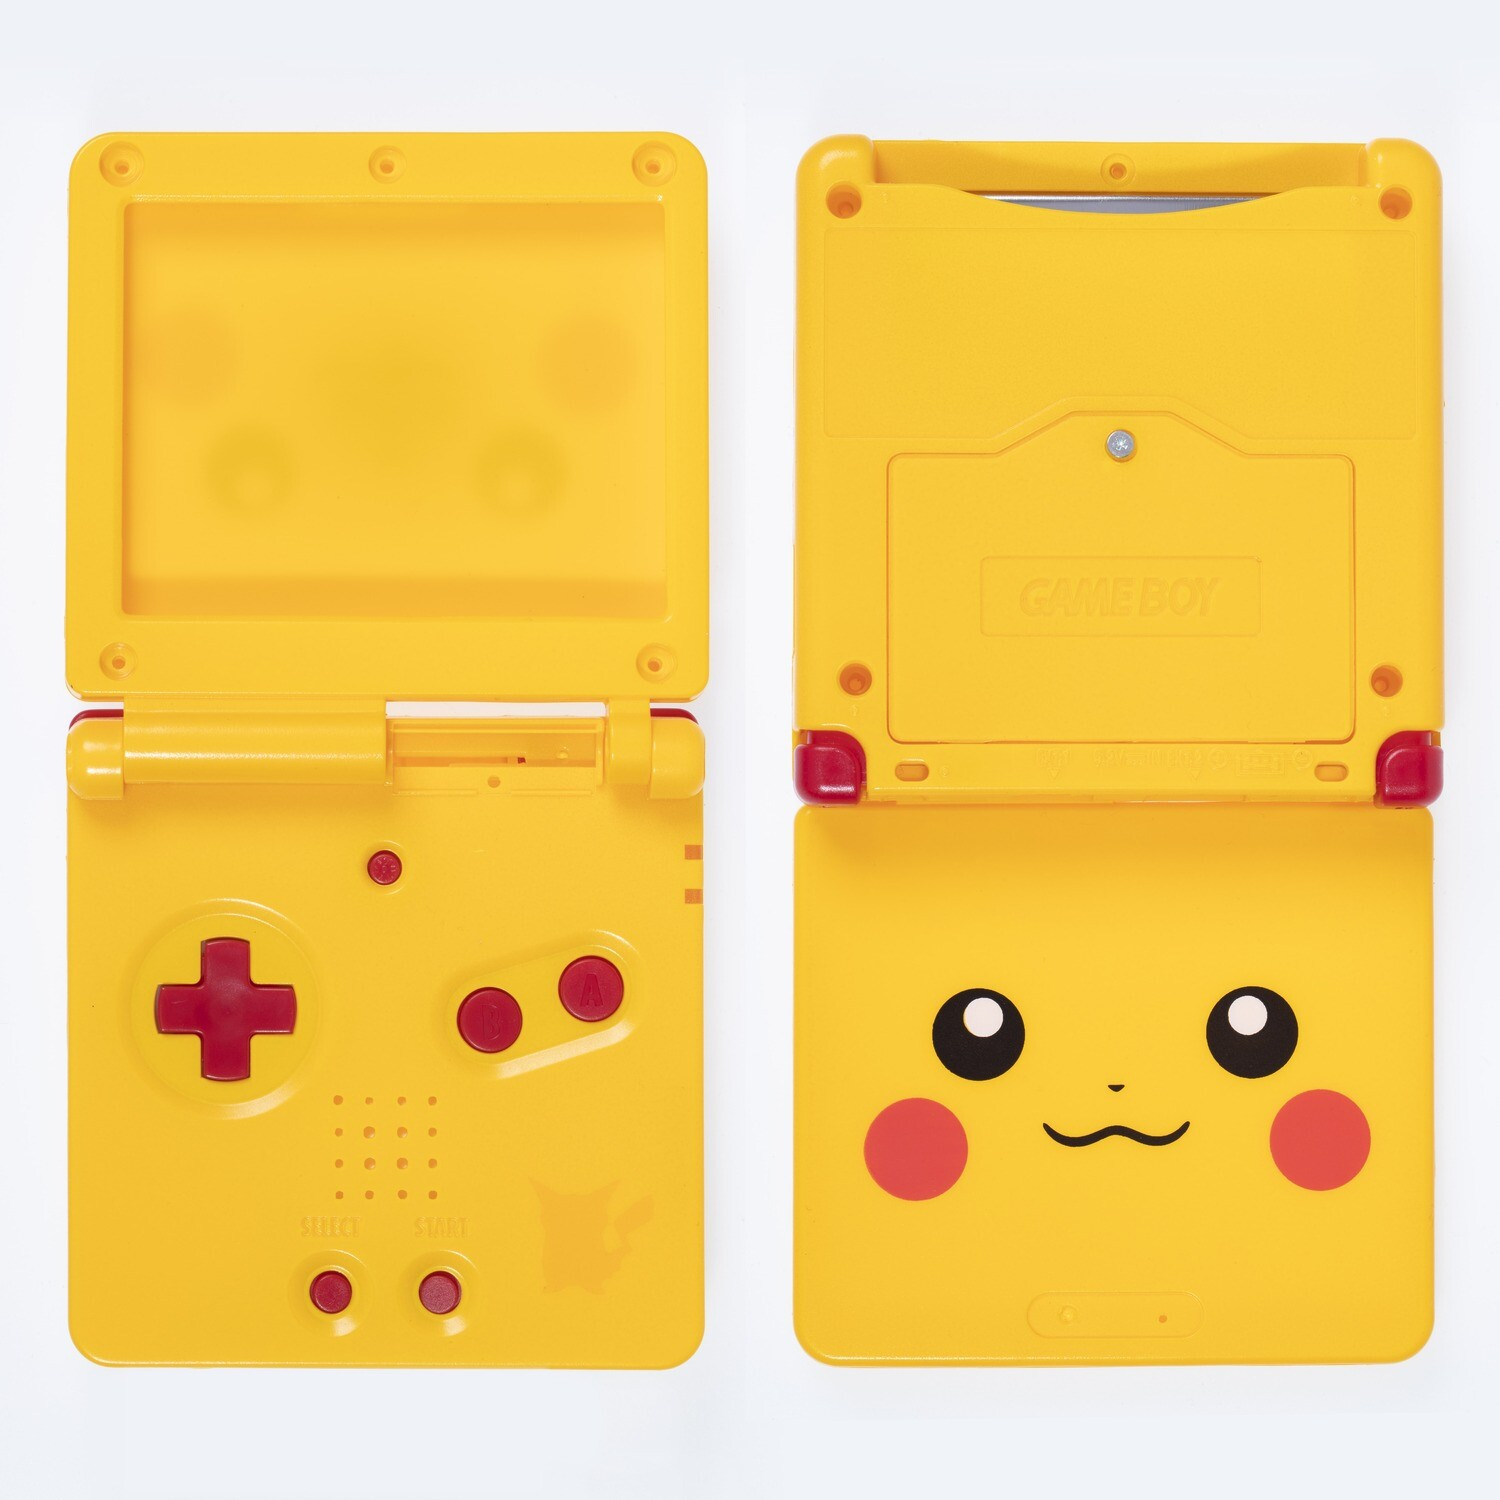 Game Boy Advance SP Shell Kit (Pikachu Yellow)